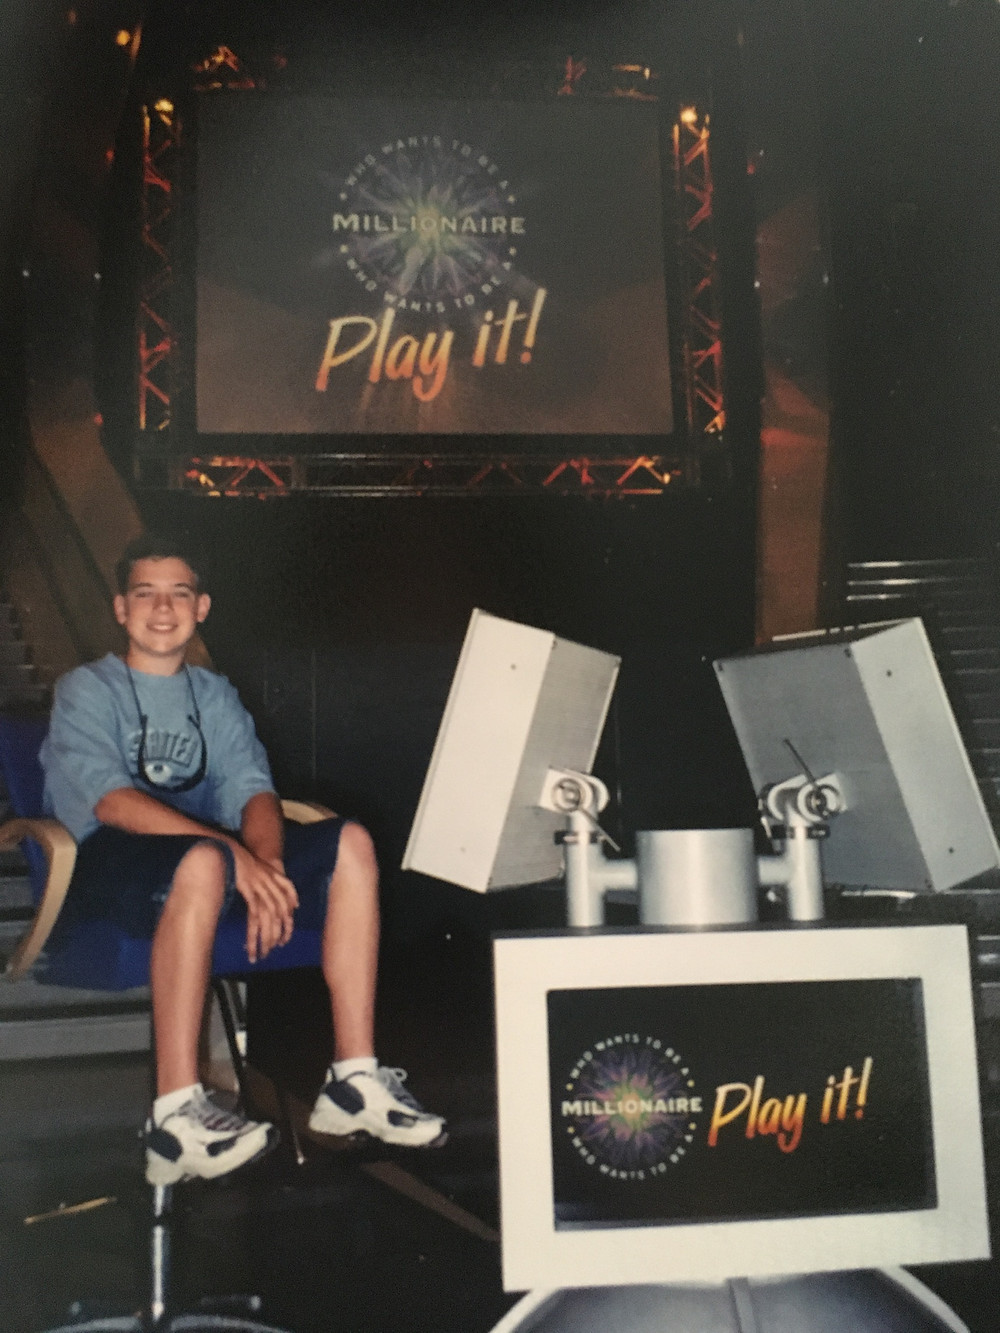 """Sitting in the contestants chair, known as the """"hot seat"""" at Who Wants to be a Millionaire - Play It! in Disney's Hollywood Studios"""